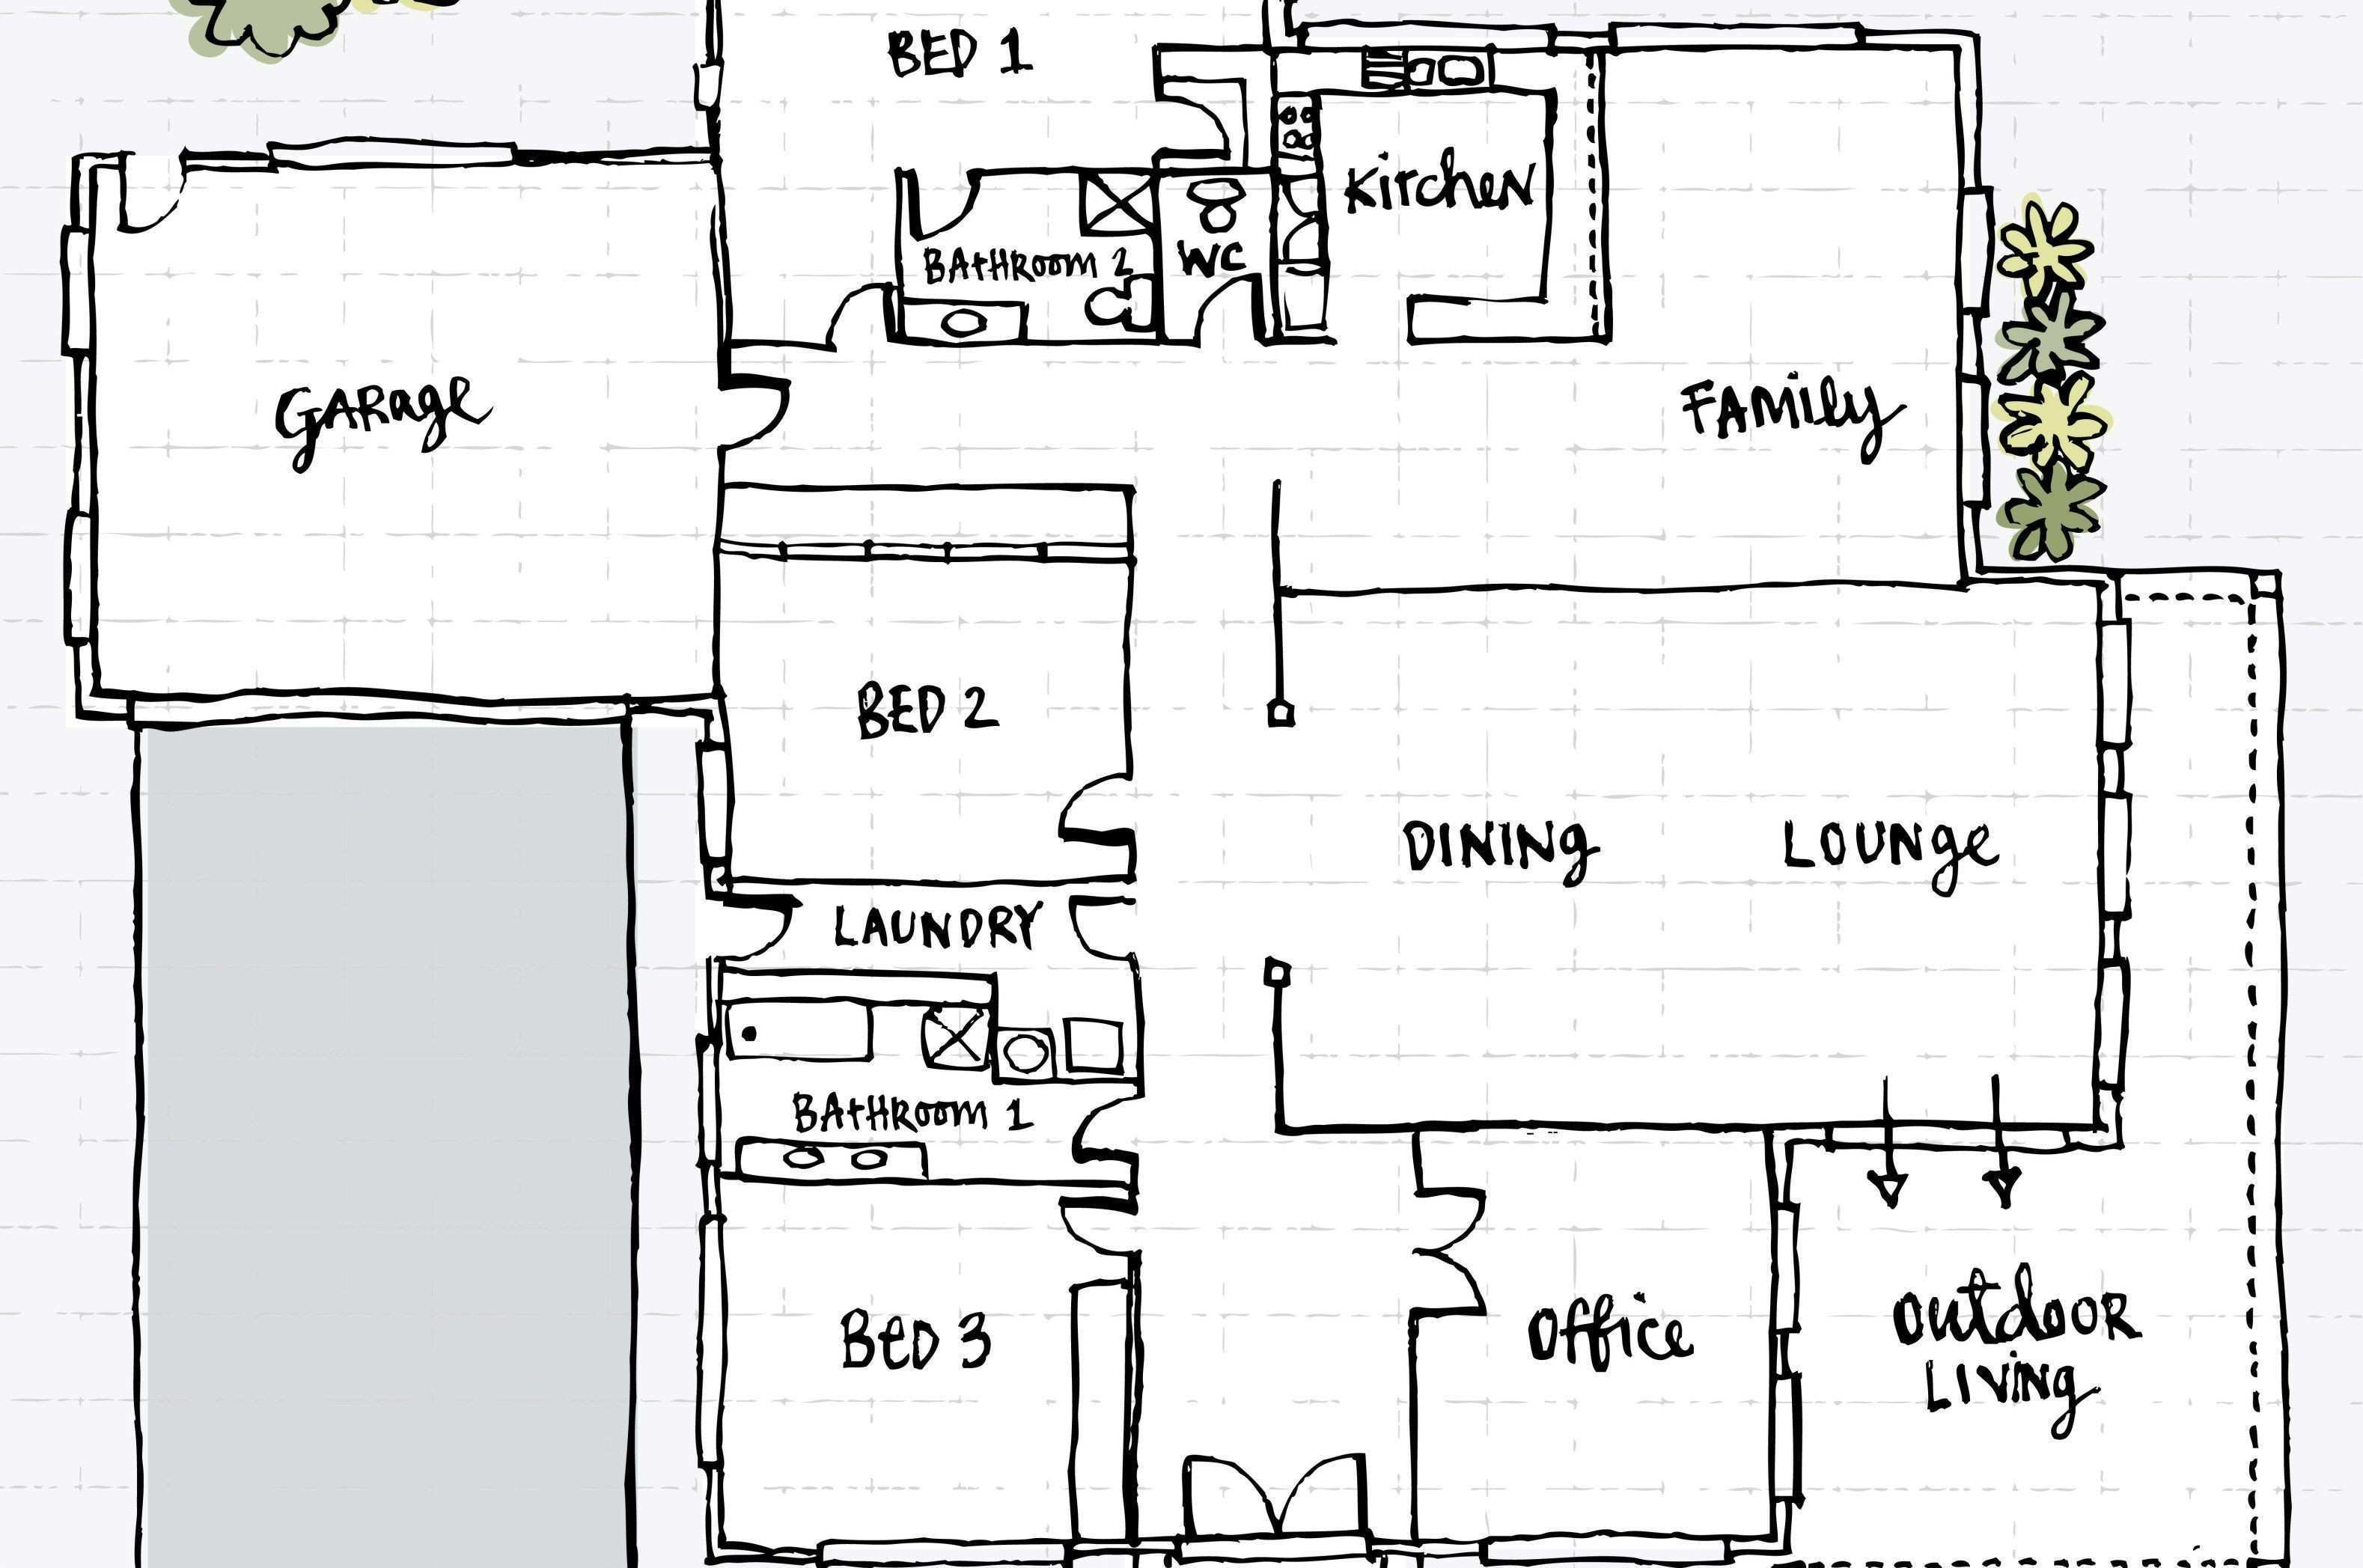 1 Bedroom House Plans Best 2 Bedroom House Plans New 700 Square